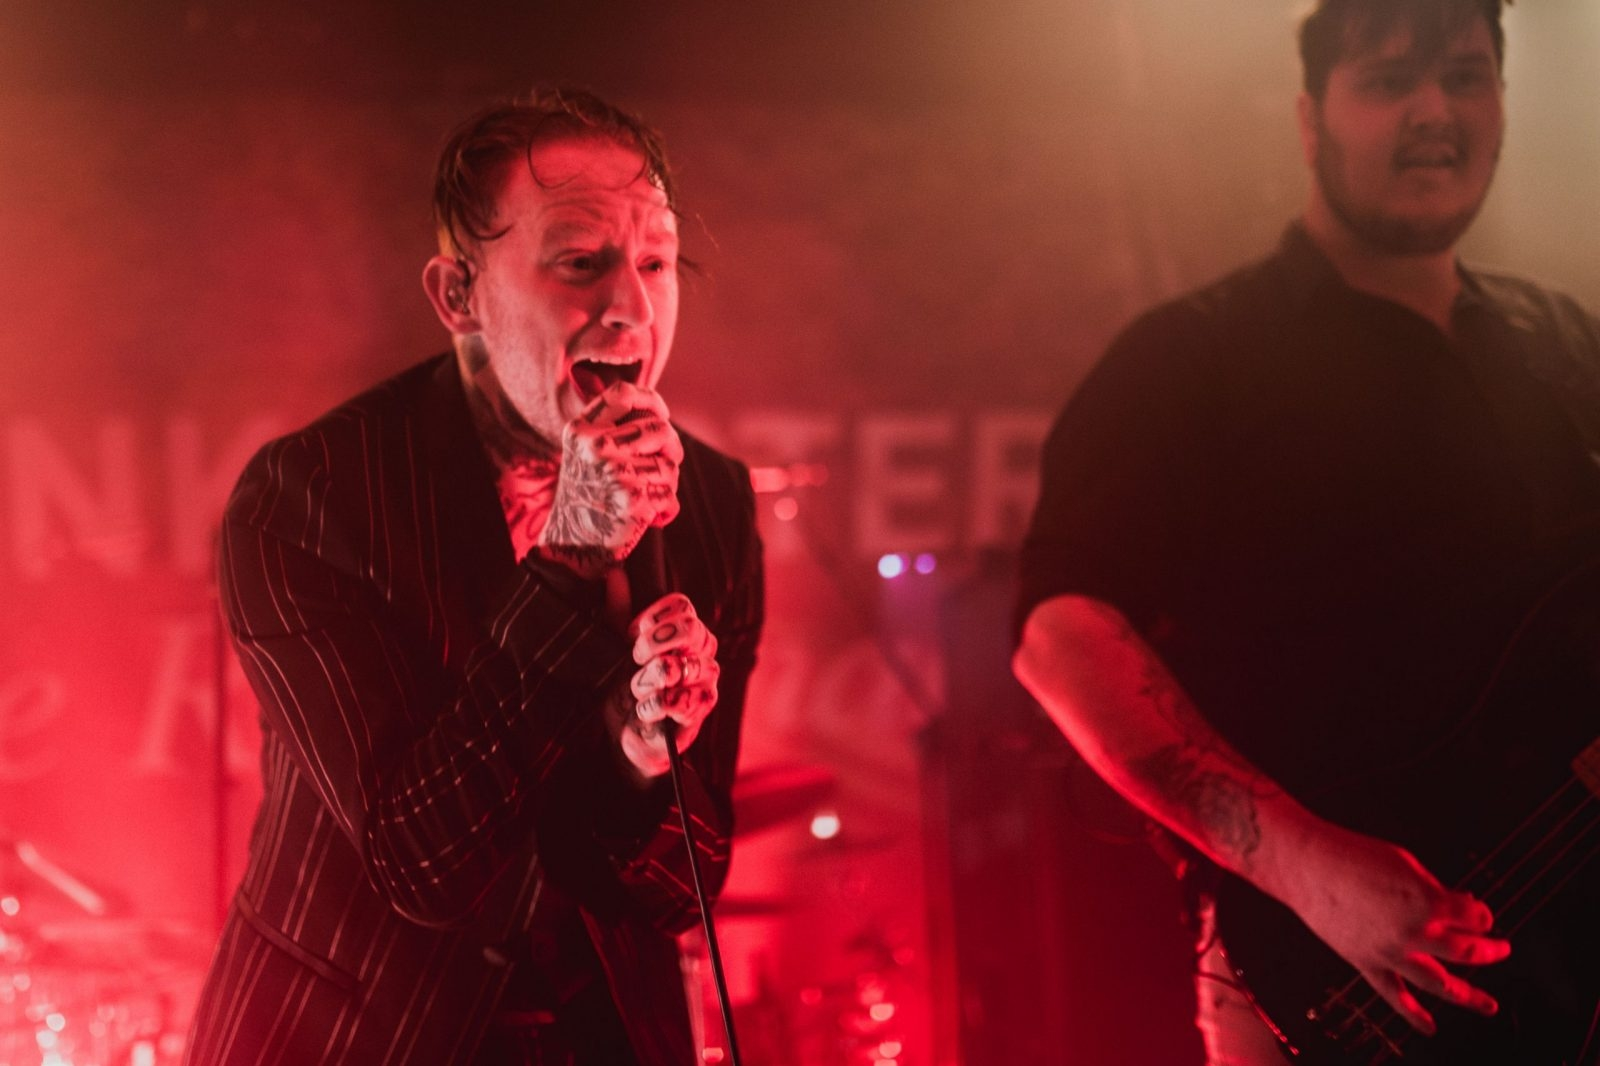 Frank Carter & The Rattlesnakes @ Oh Yeah Music Centre 30